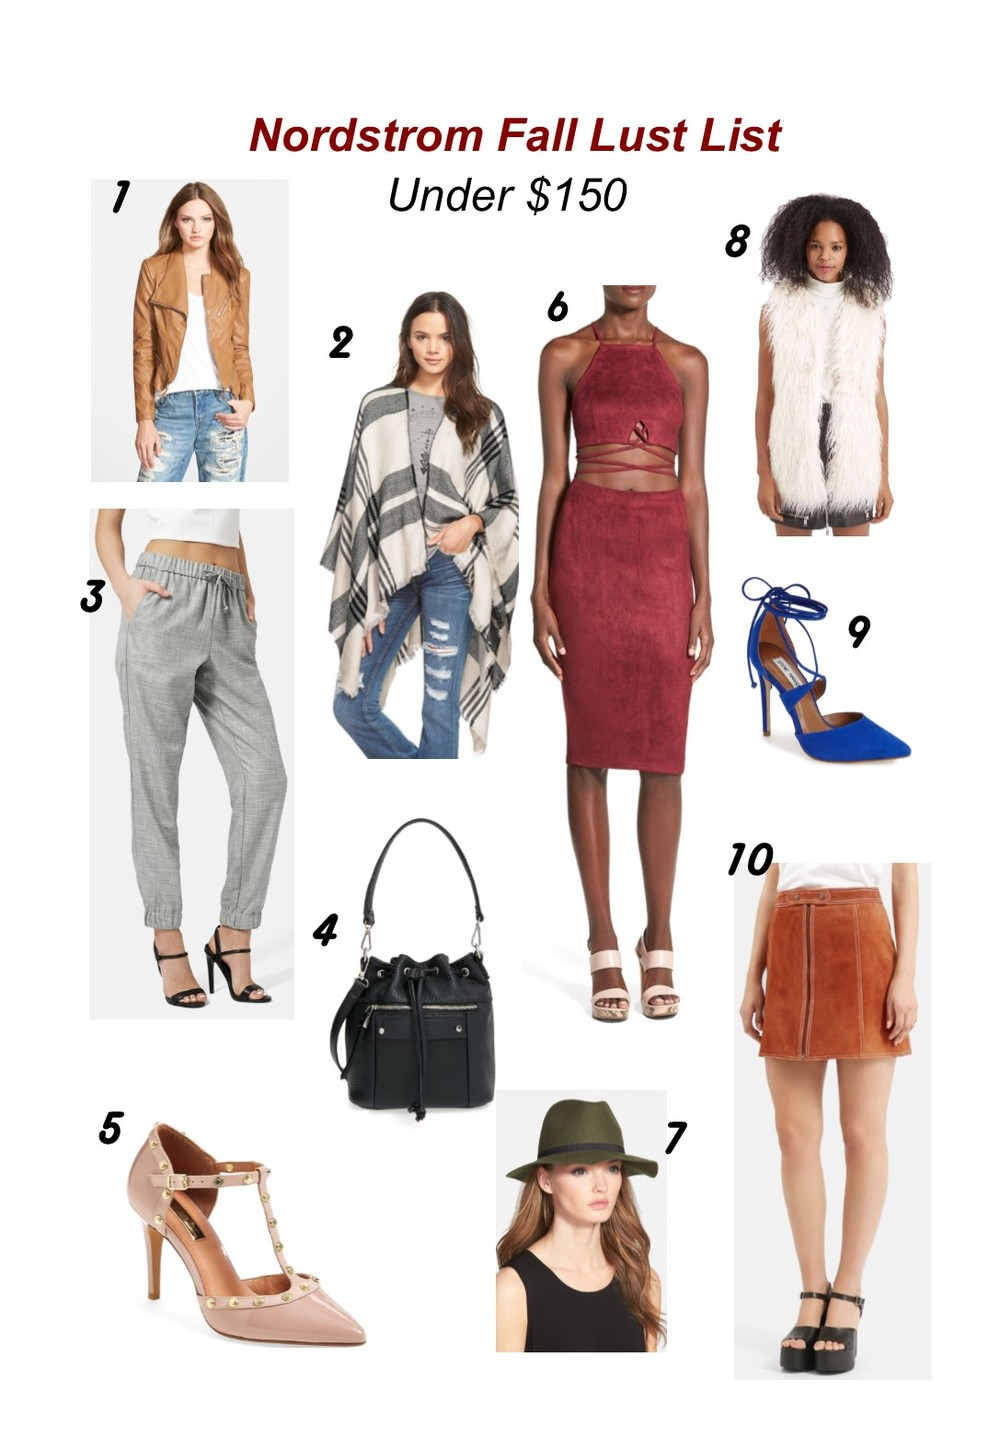 Nordstrom-Fall-Lust-List.jpg